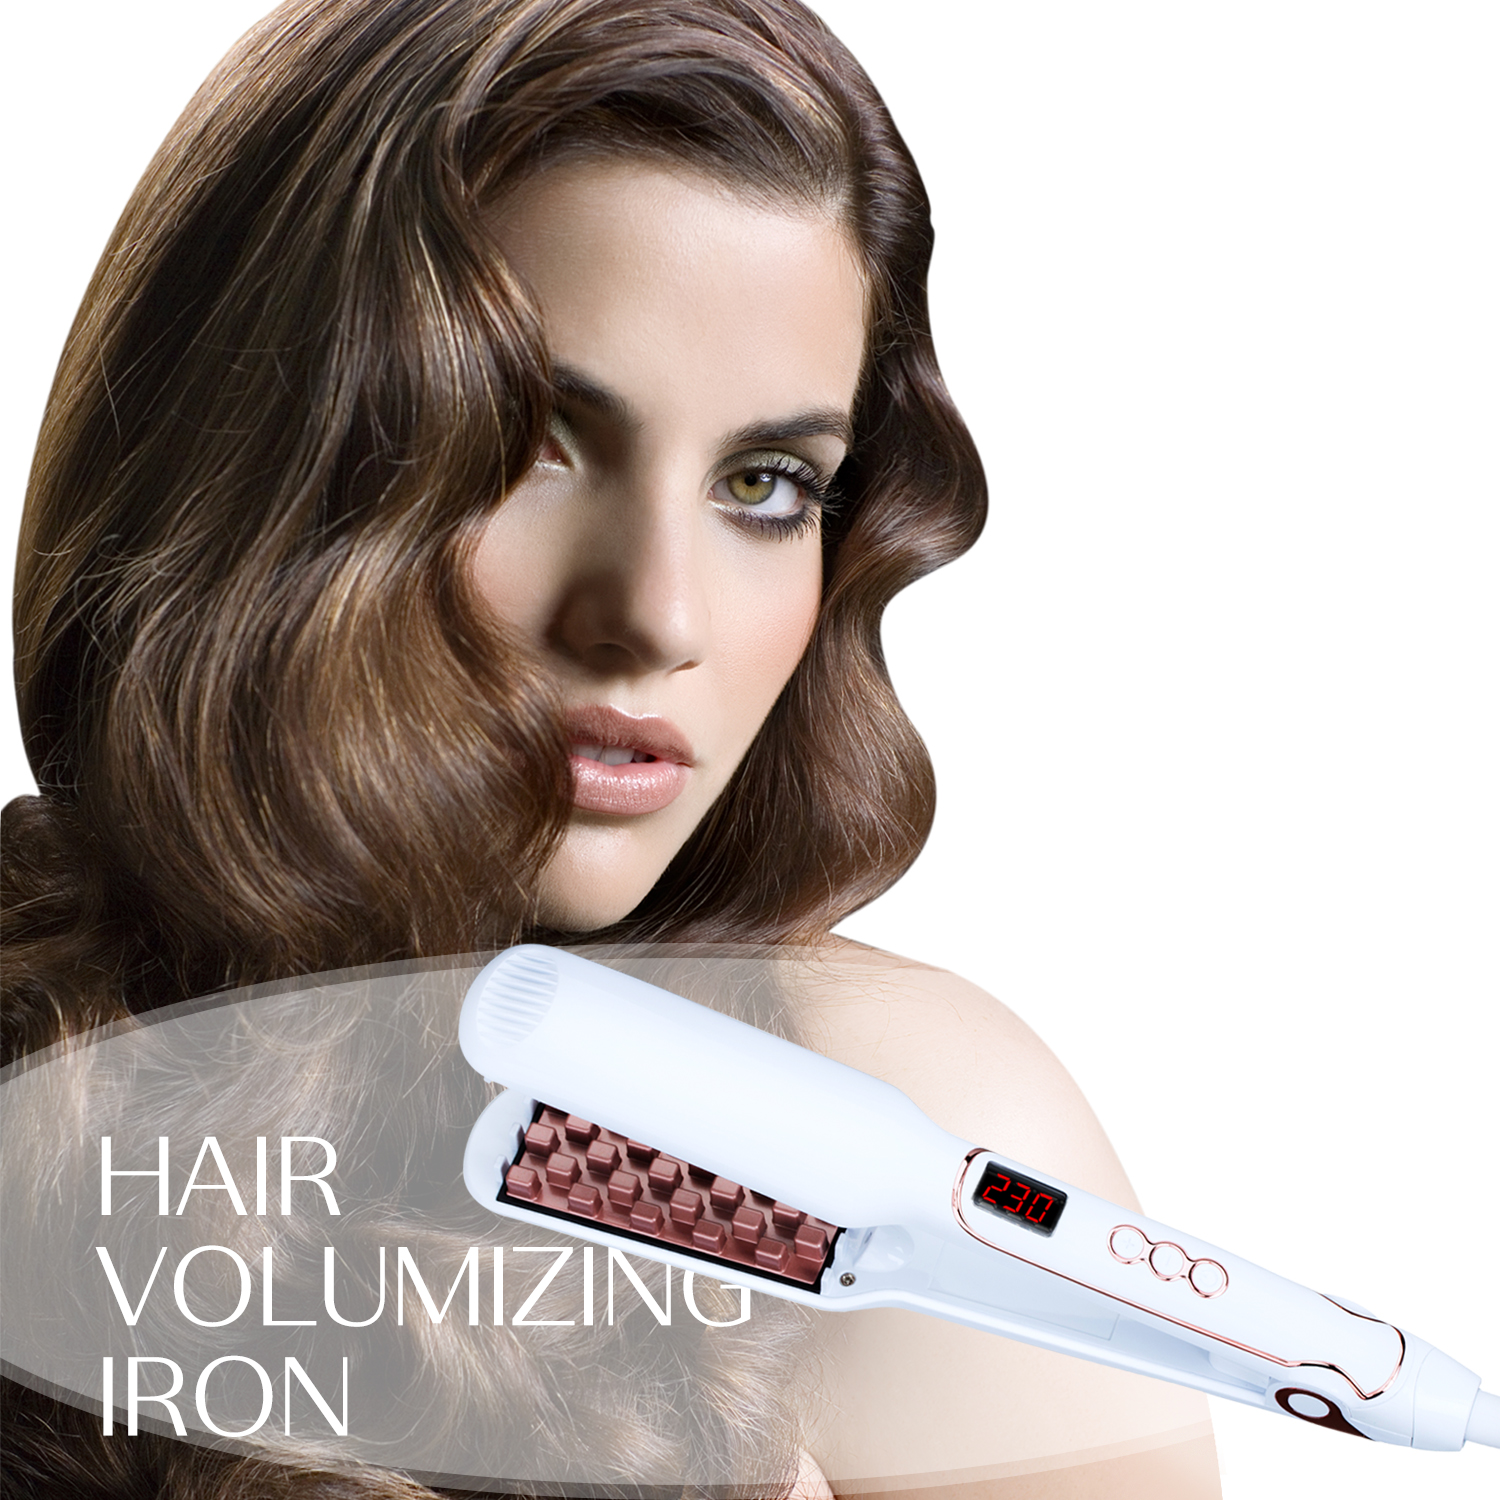 Fluffy Pelurus Rambut Rambut Volumizing Iron Flat Iron Digital Flat Iron Dengan LCD Display Listrik Fluffy Styling Hair Lifter